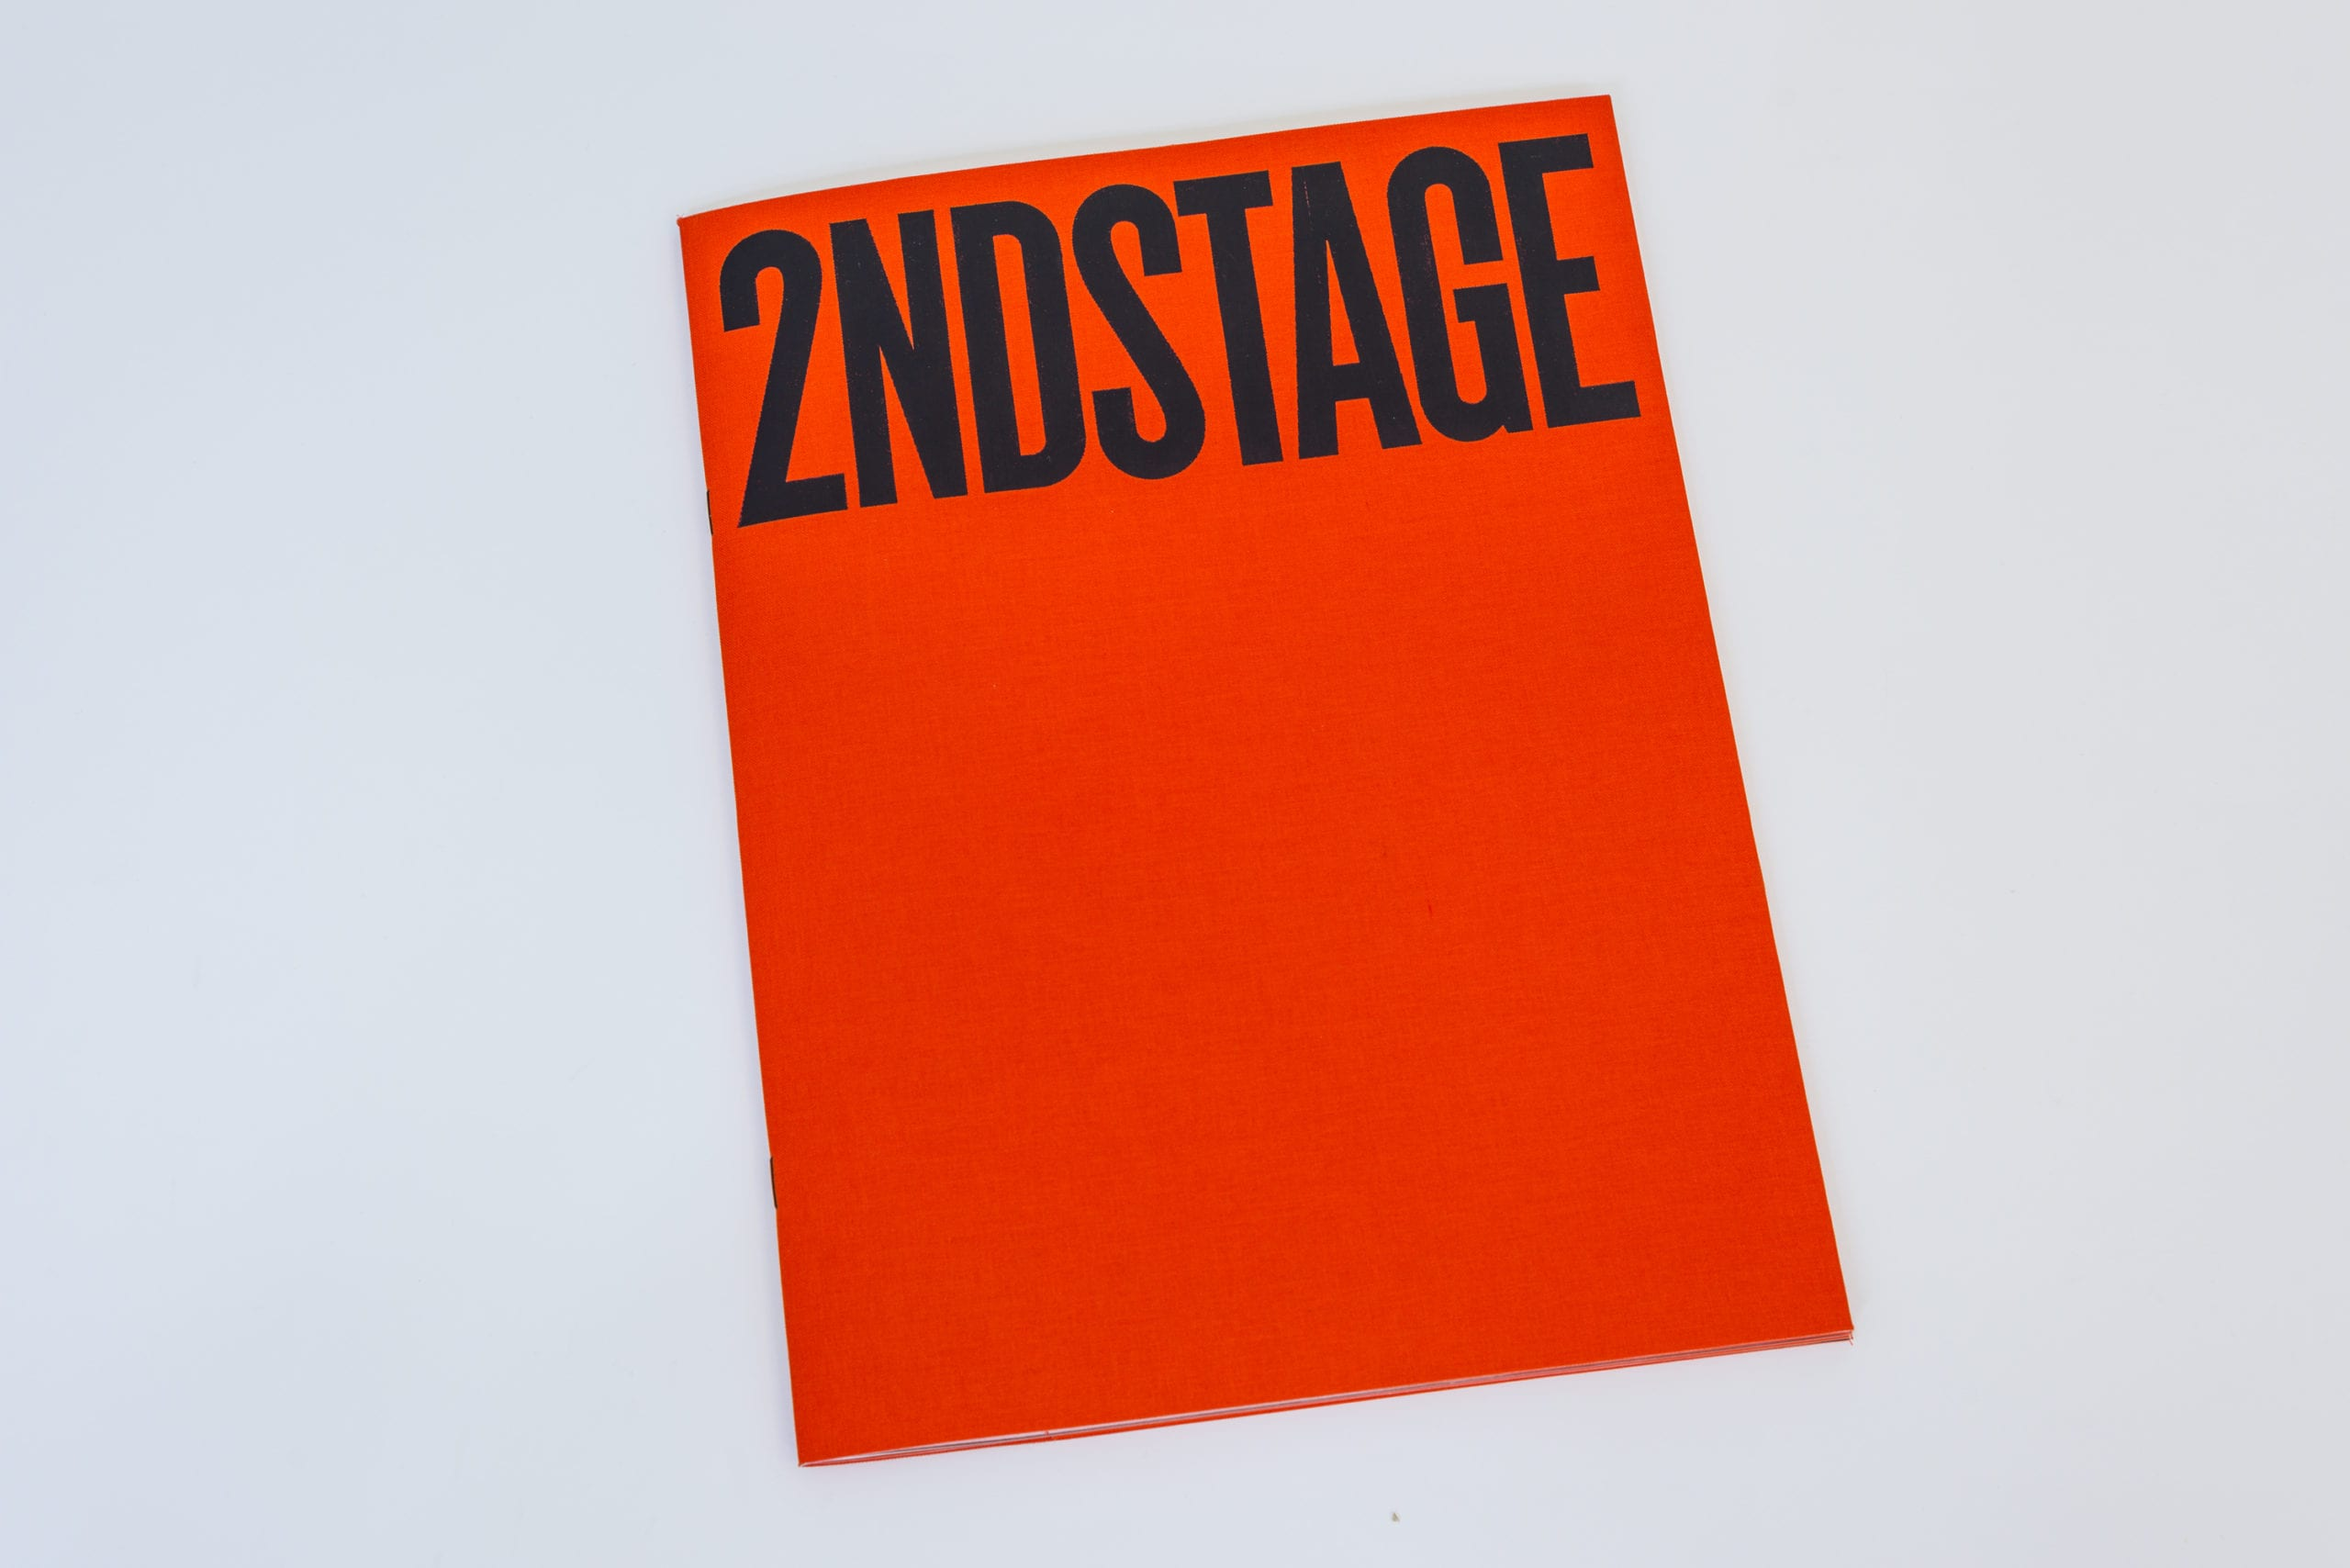 2ndStage